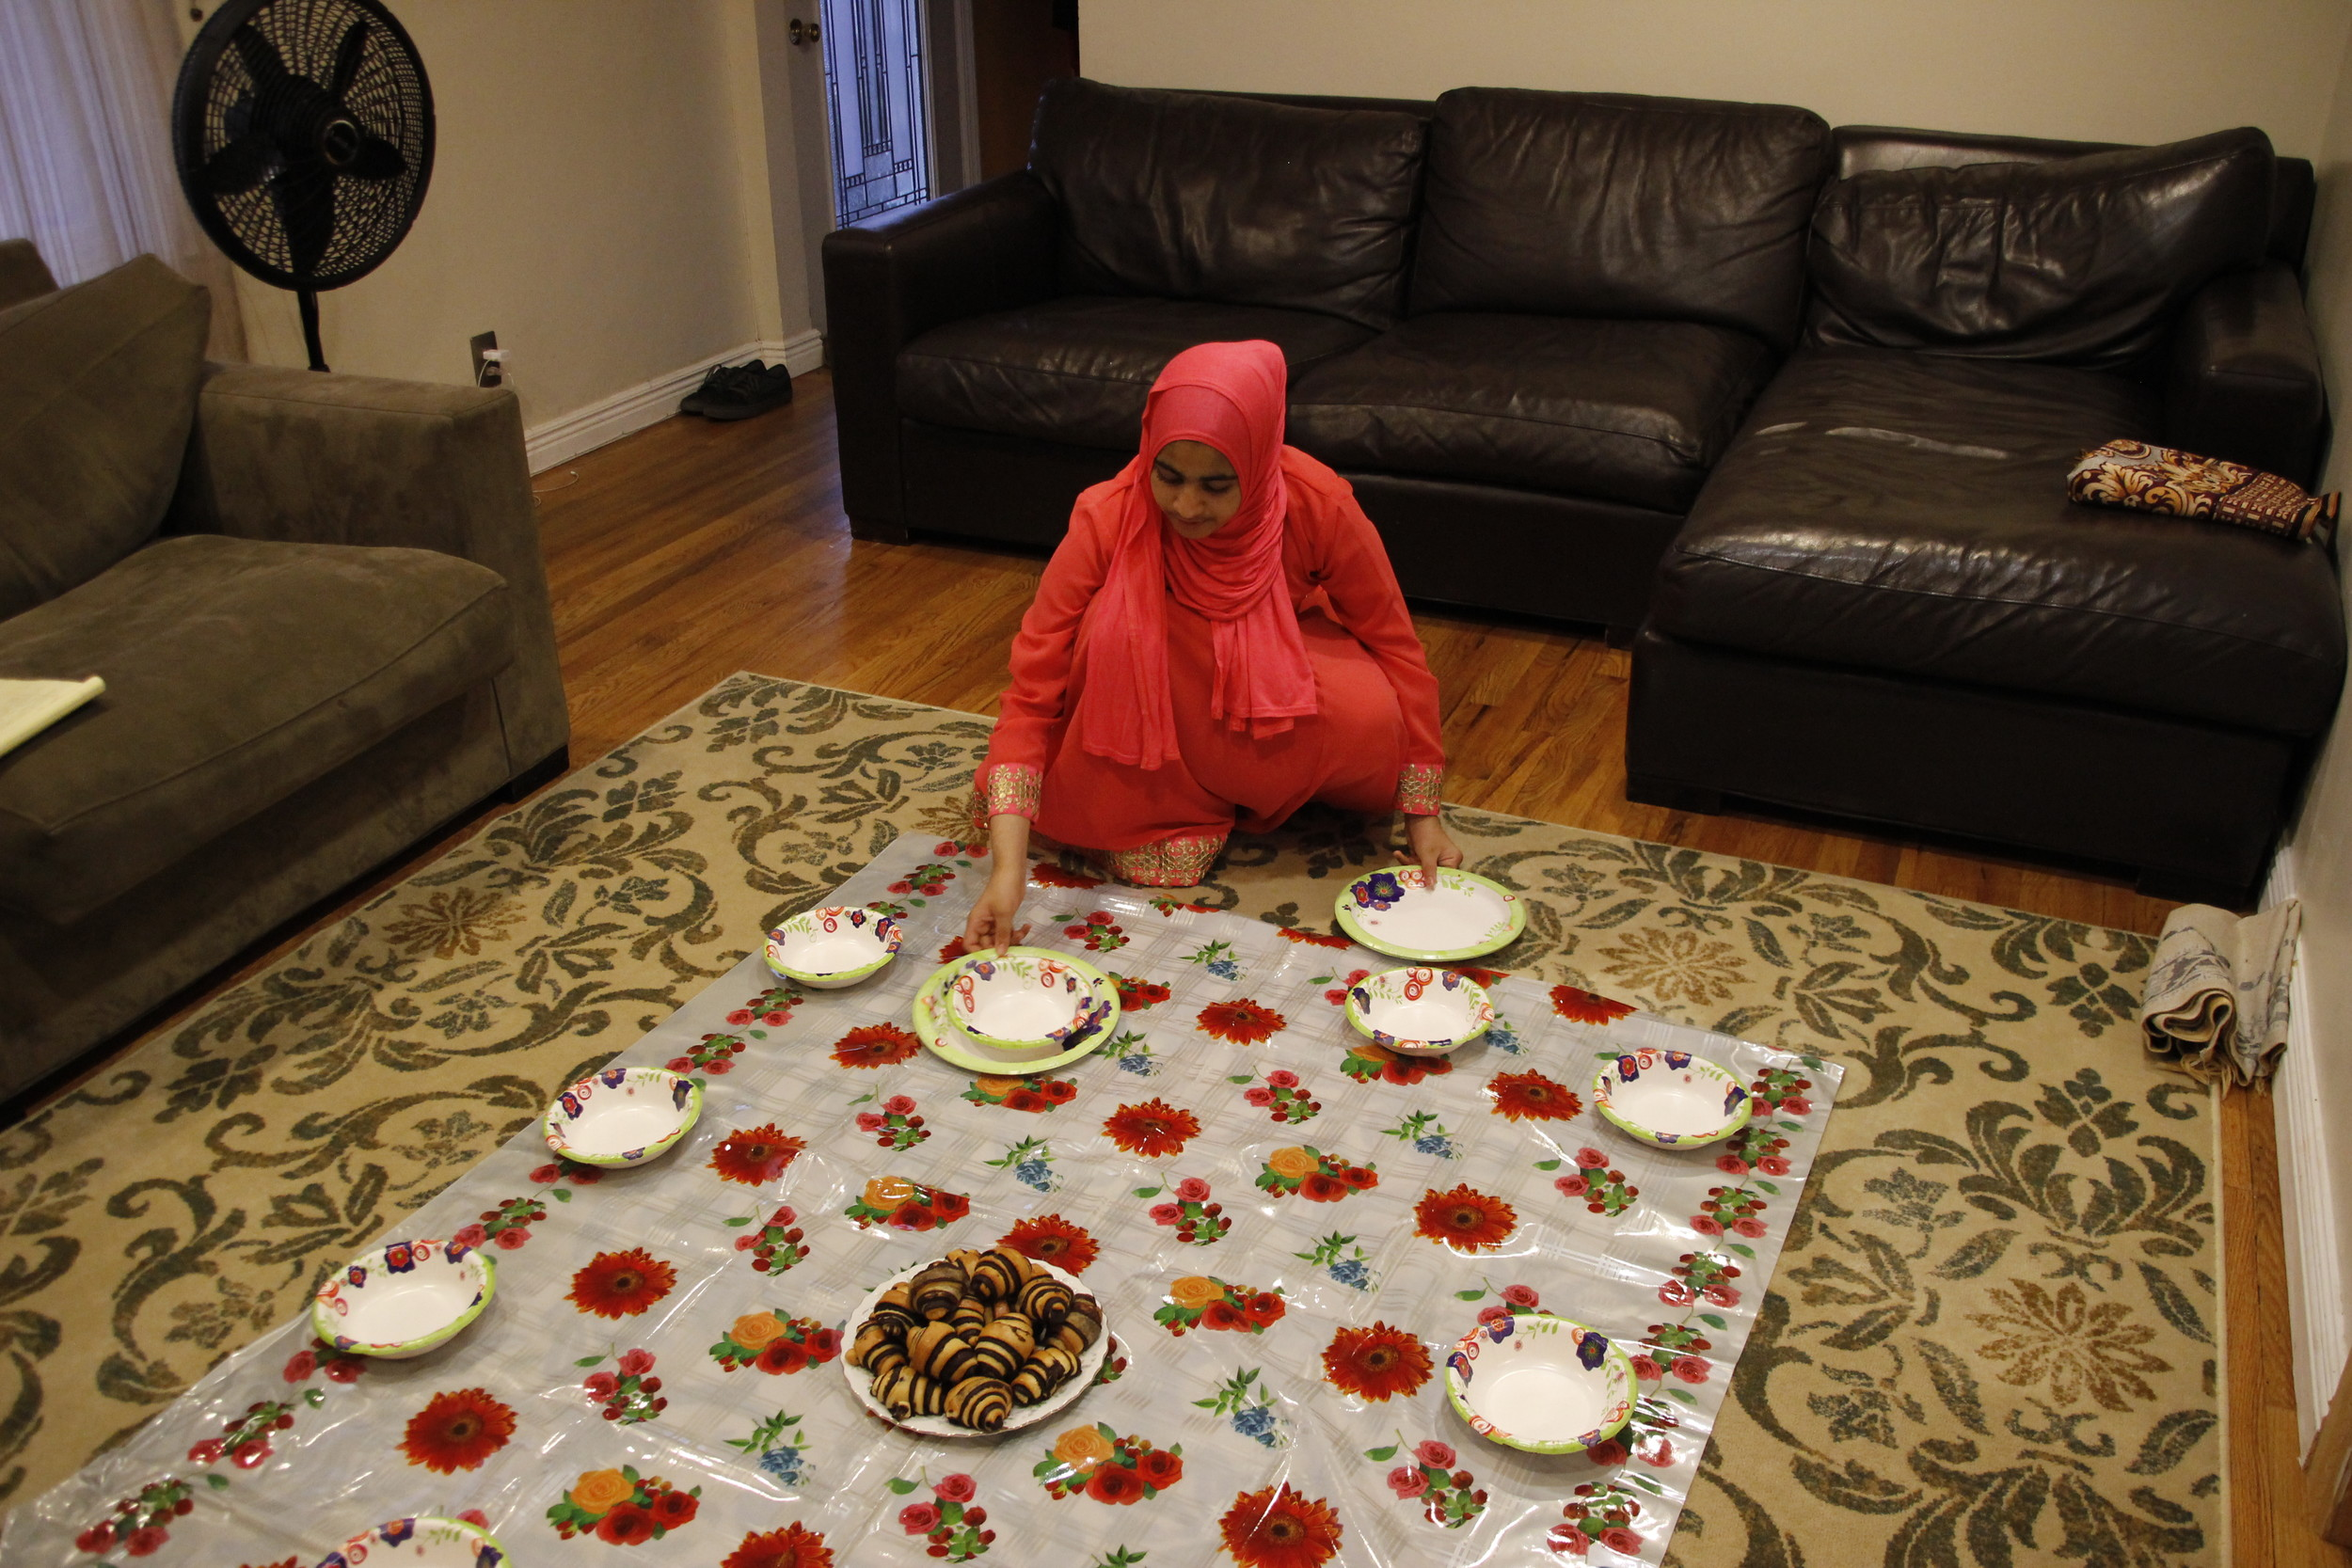 Maysa Kapadia, 14, helped with dinner set-up.